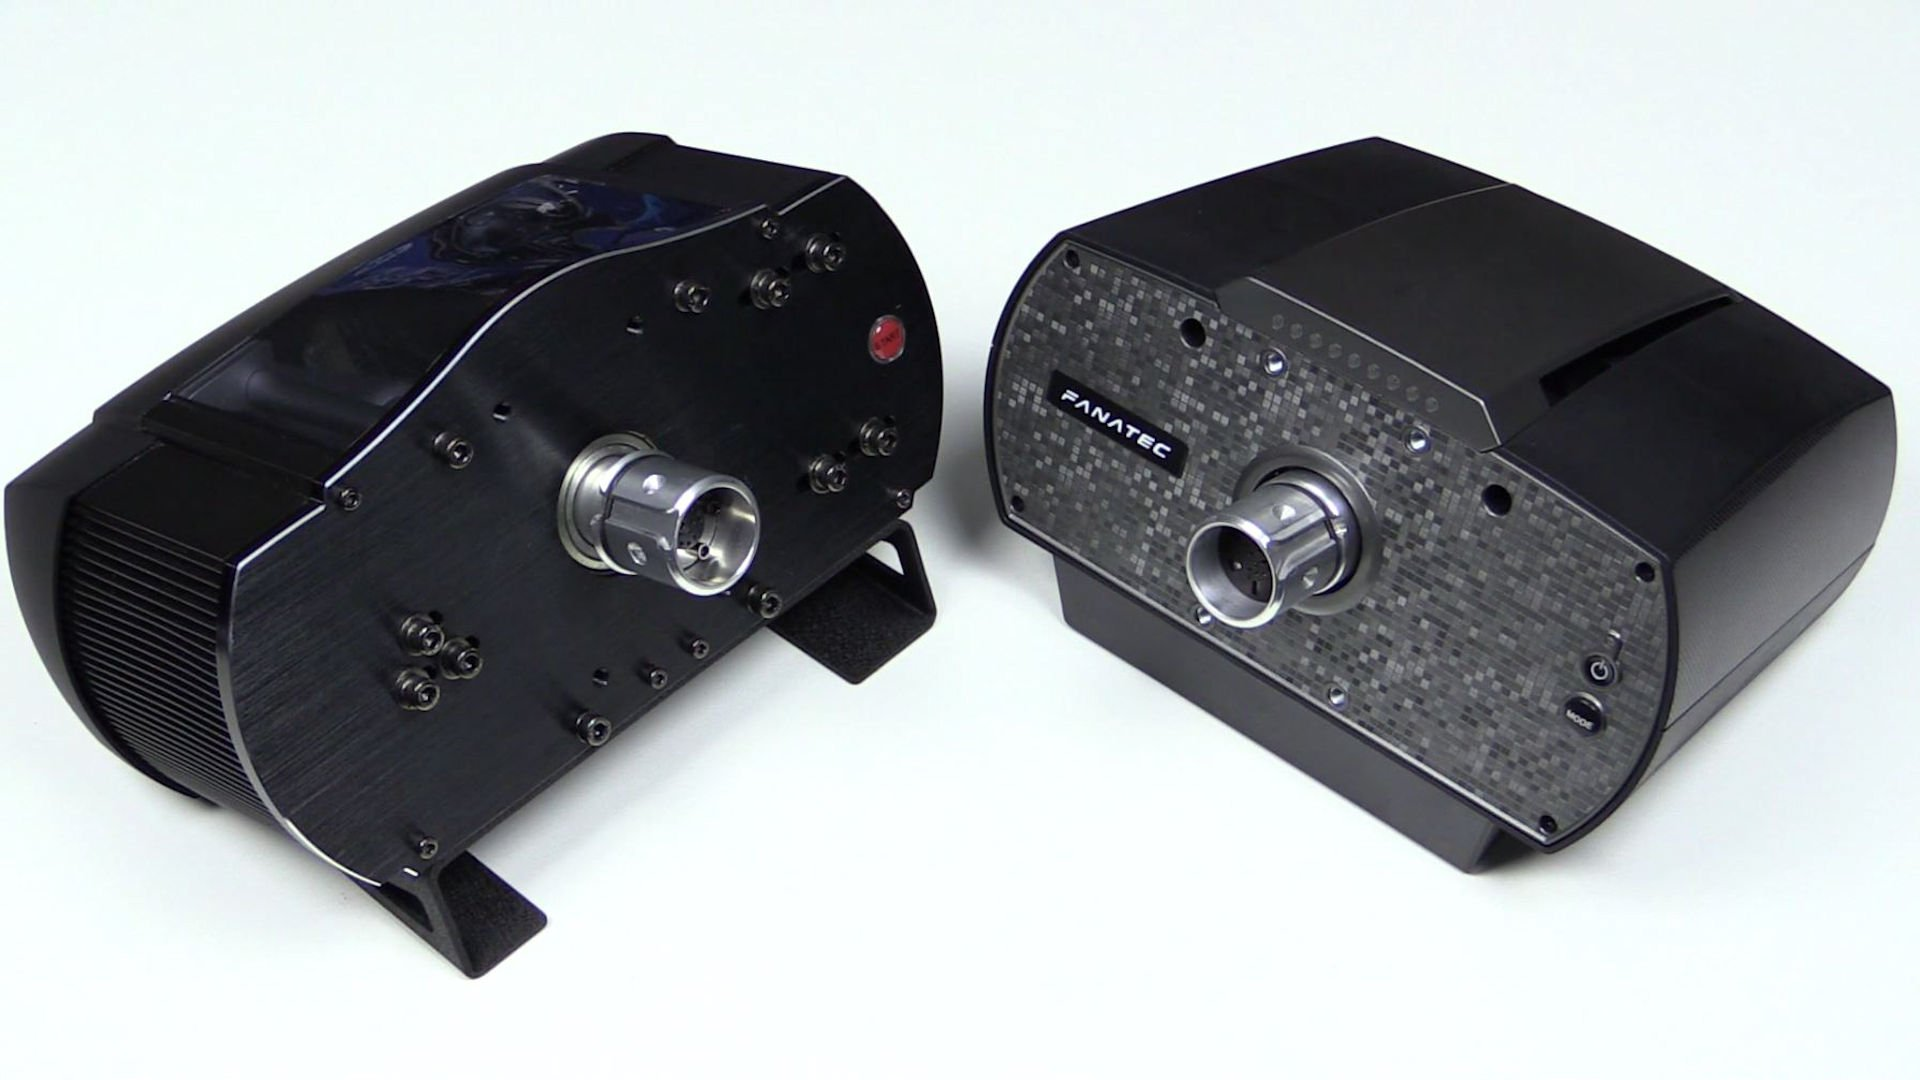 fanatec-csl-elite-wheel-base-and-csw-v2